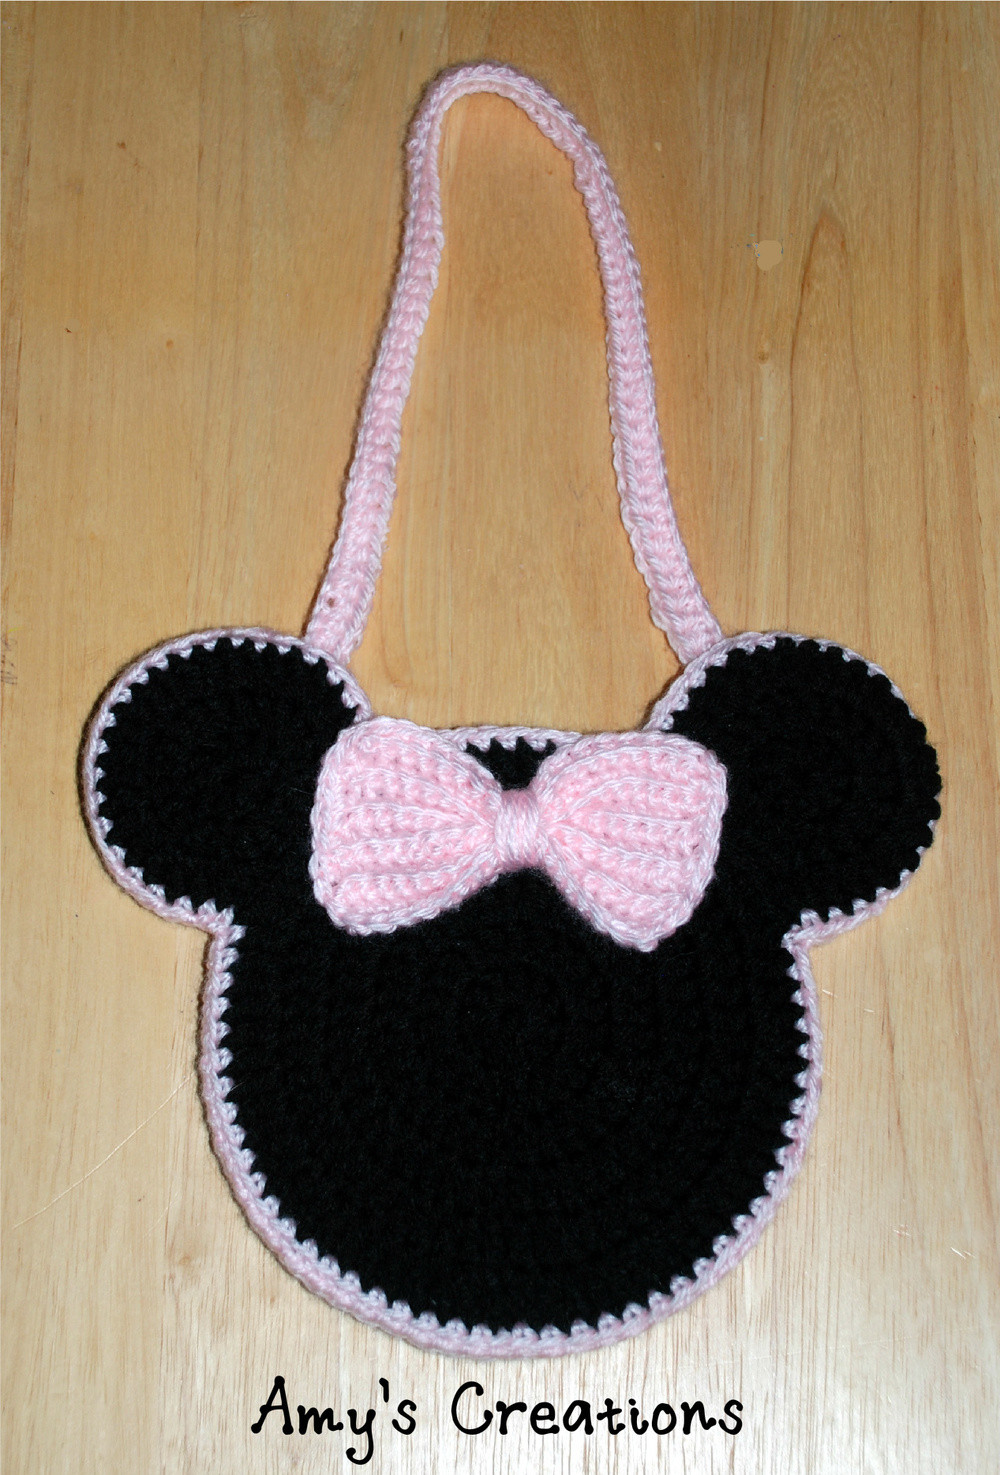 Free Crochet Bag Patterns Awesome Minnie Mouse Inspired Crochet Bag Pattern Of Awesome 45 Ideas Free Crochet Bag Patterns